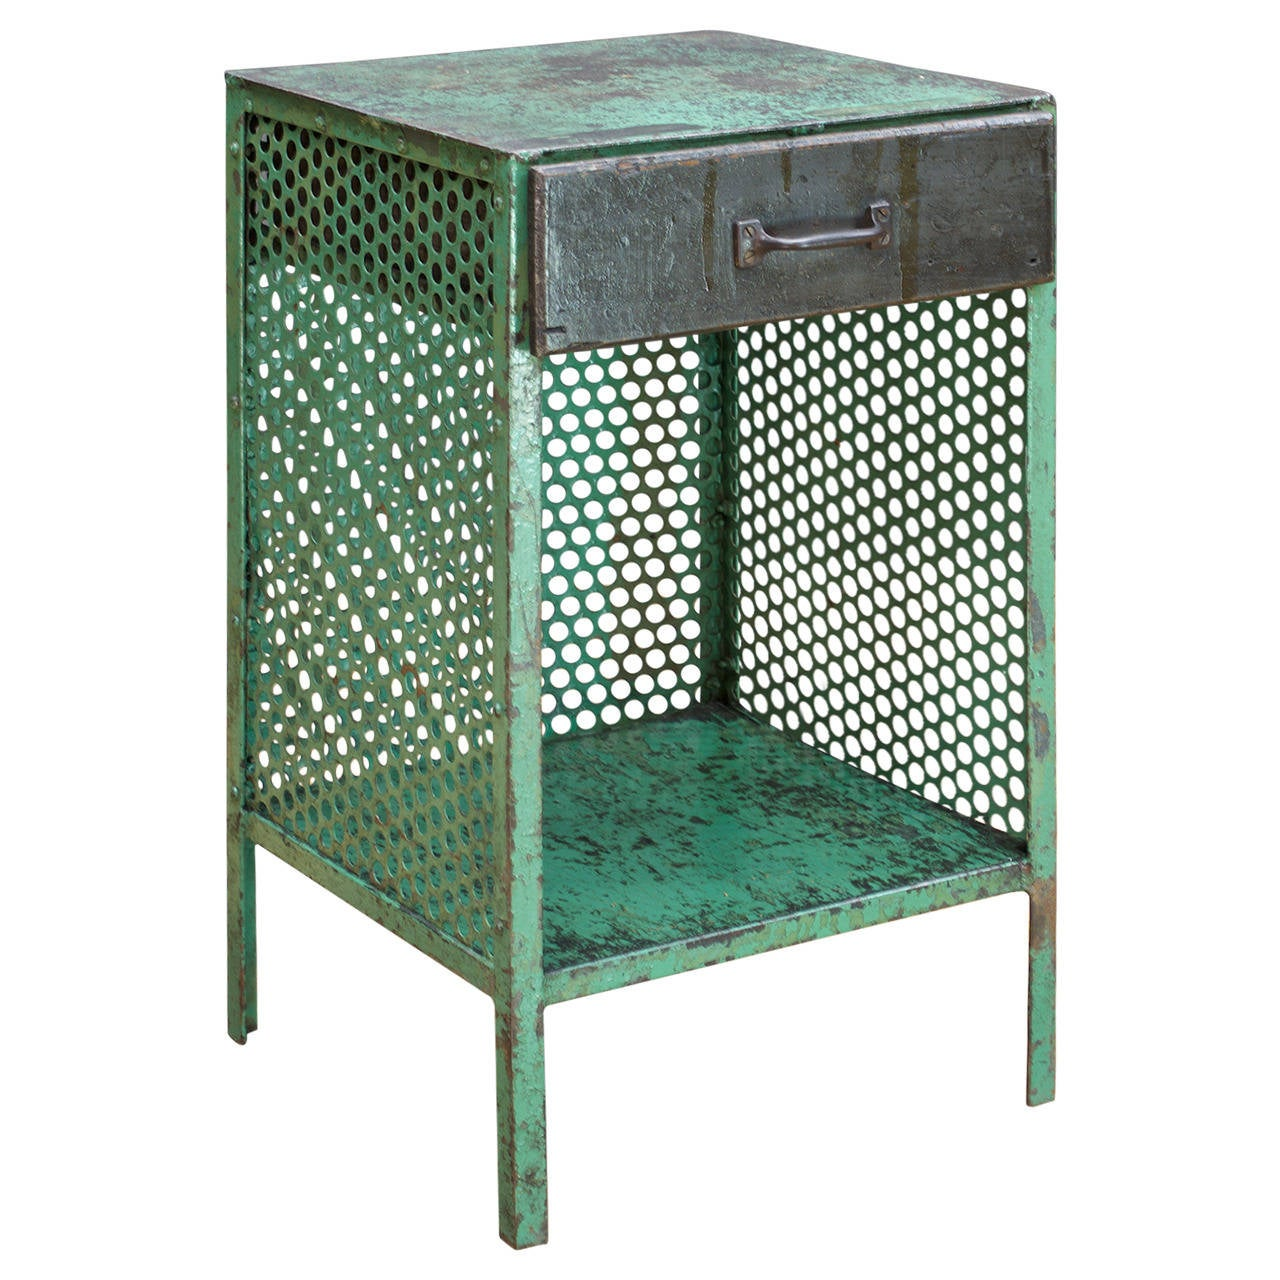 1930s Factory Made Perforated Metal Bedside Cabinet At 1stdibs